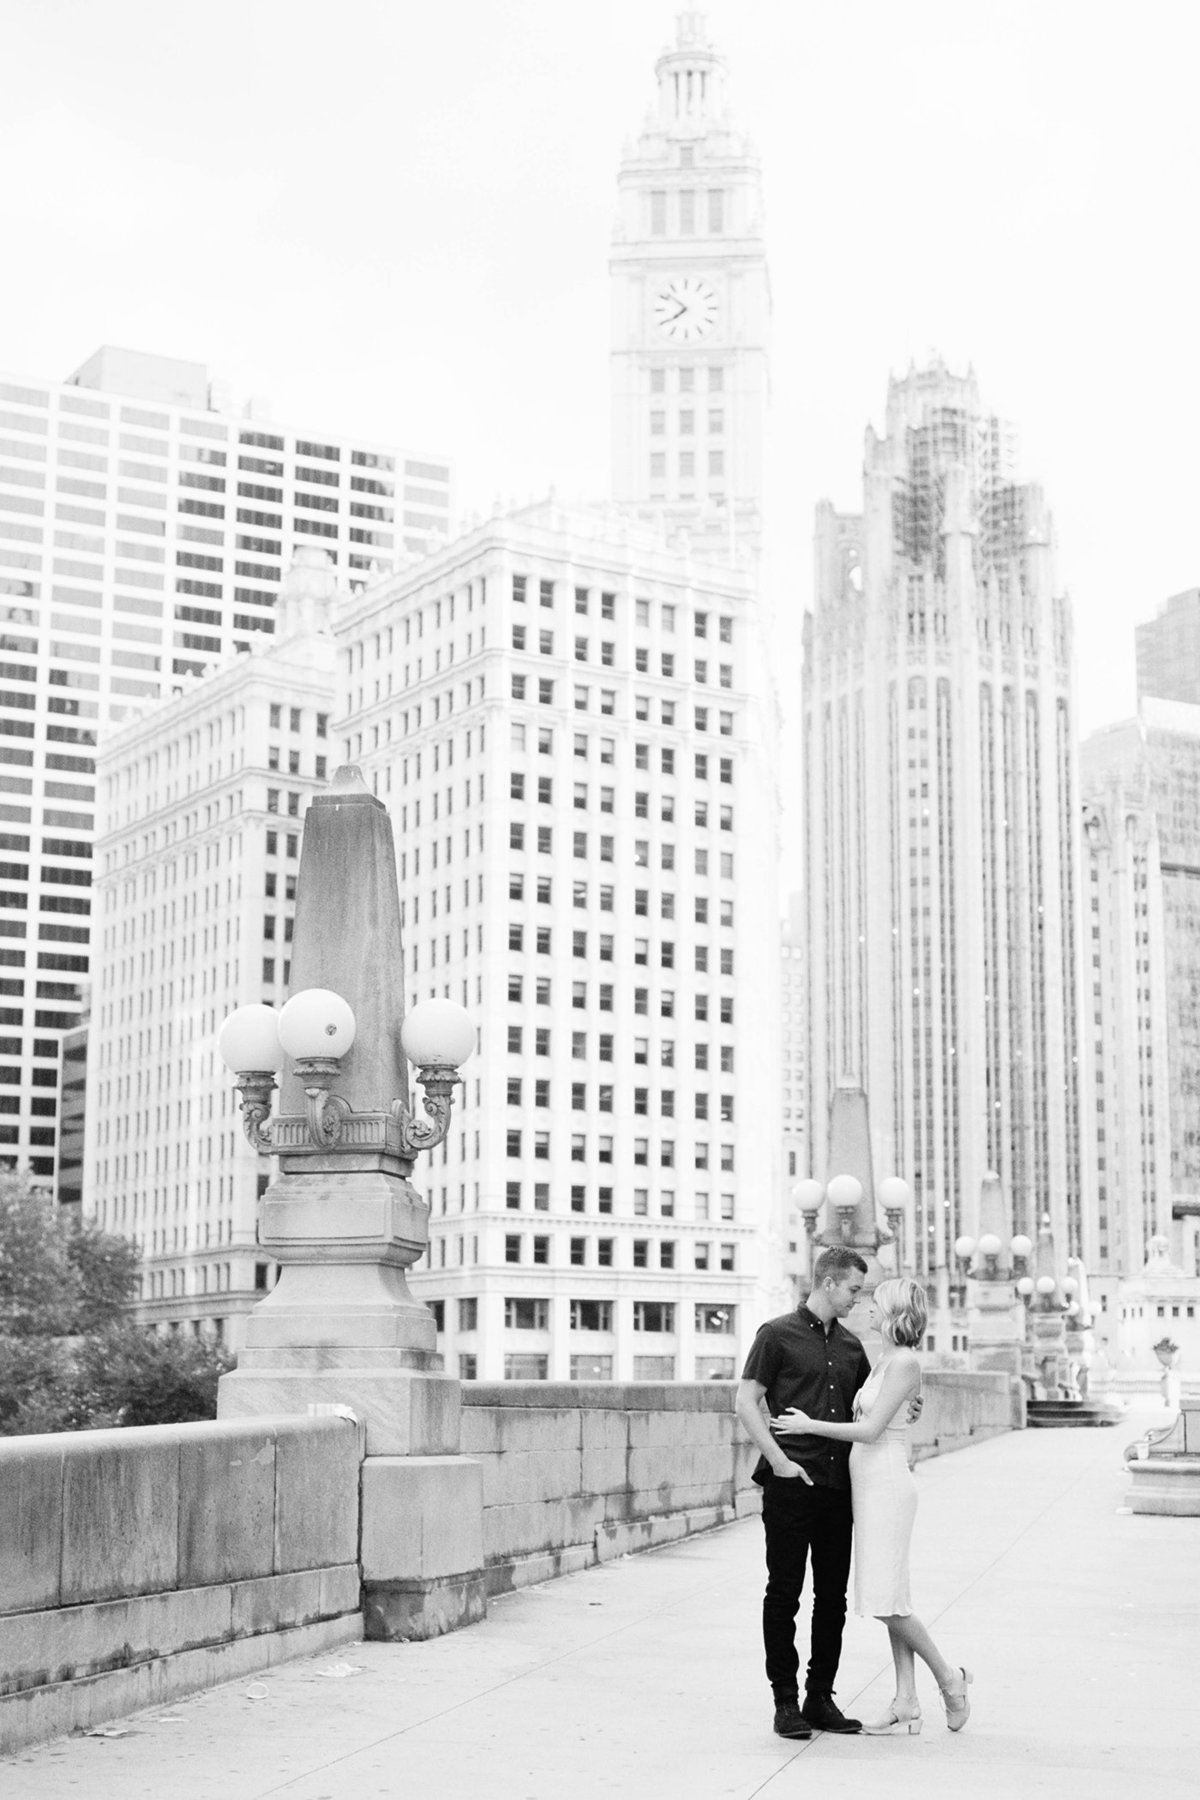 Chicago Wedding Photographer - Fine Art Film Photographer - Sarah Sunstrom - Sam + Morgan - Engagement Session - 2